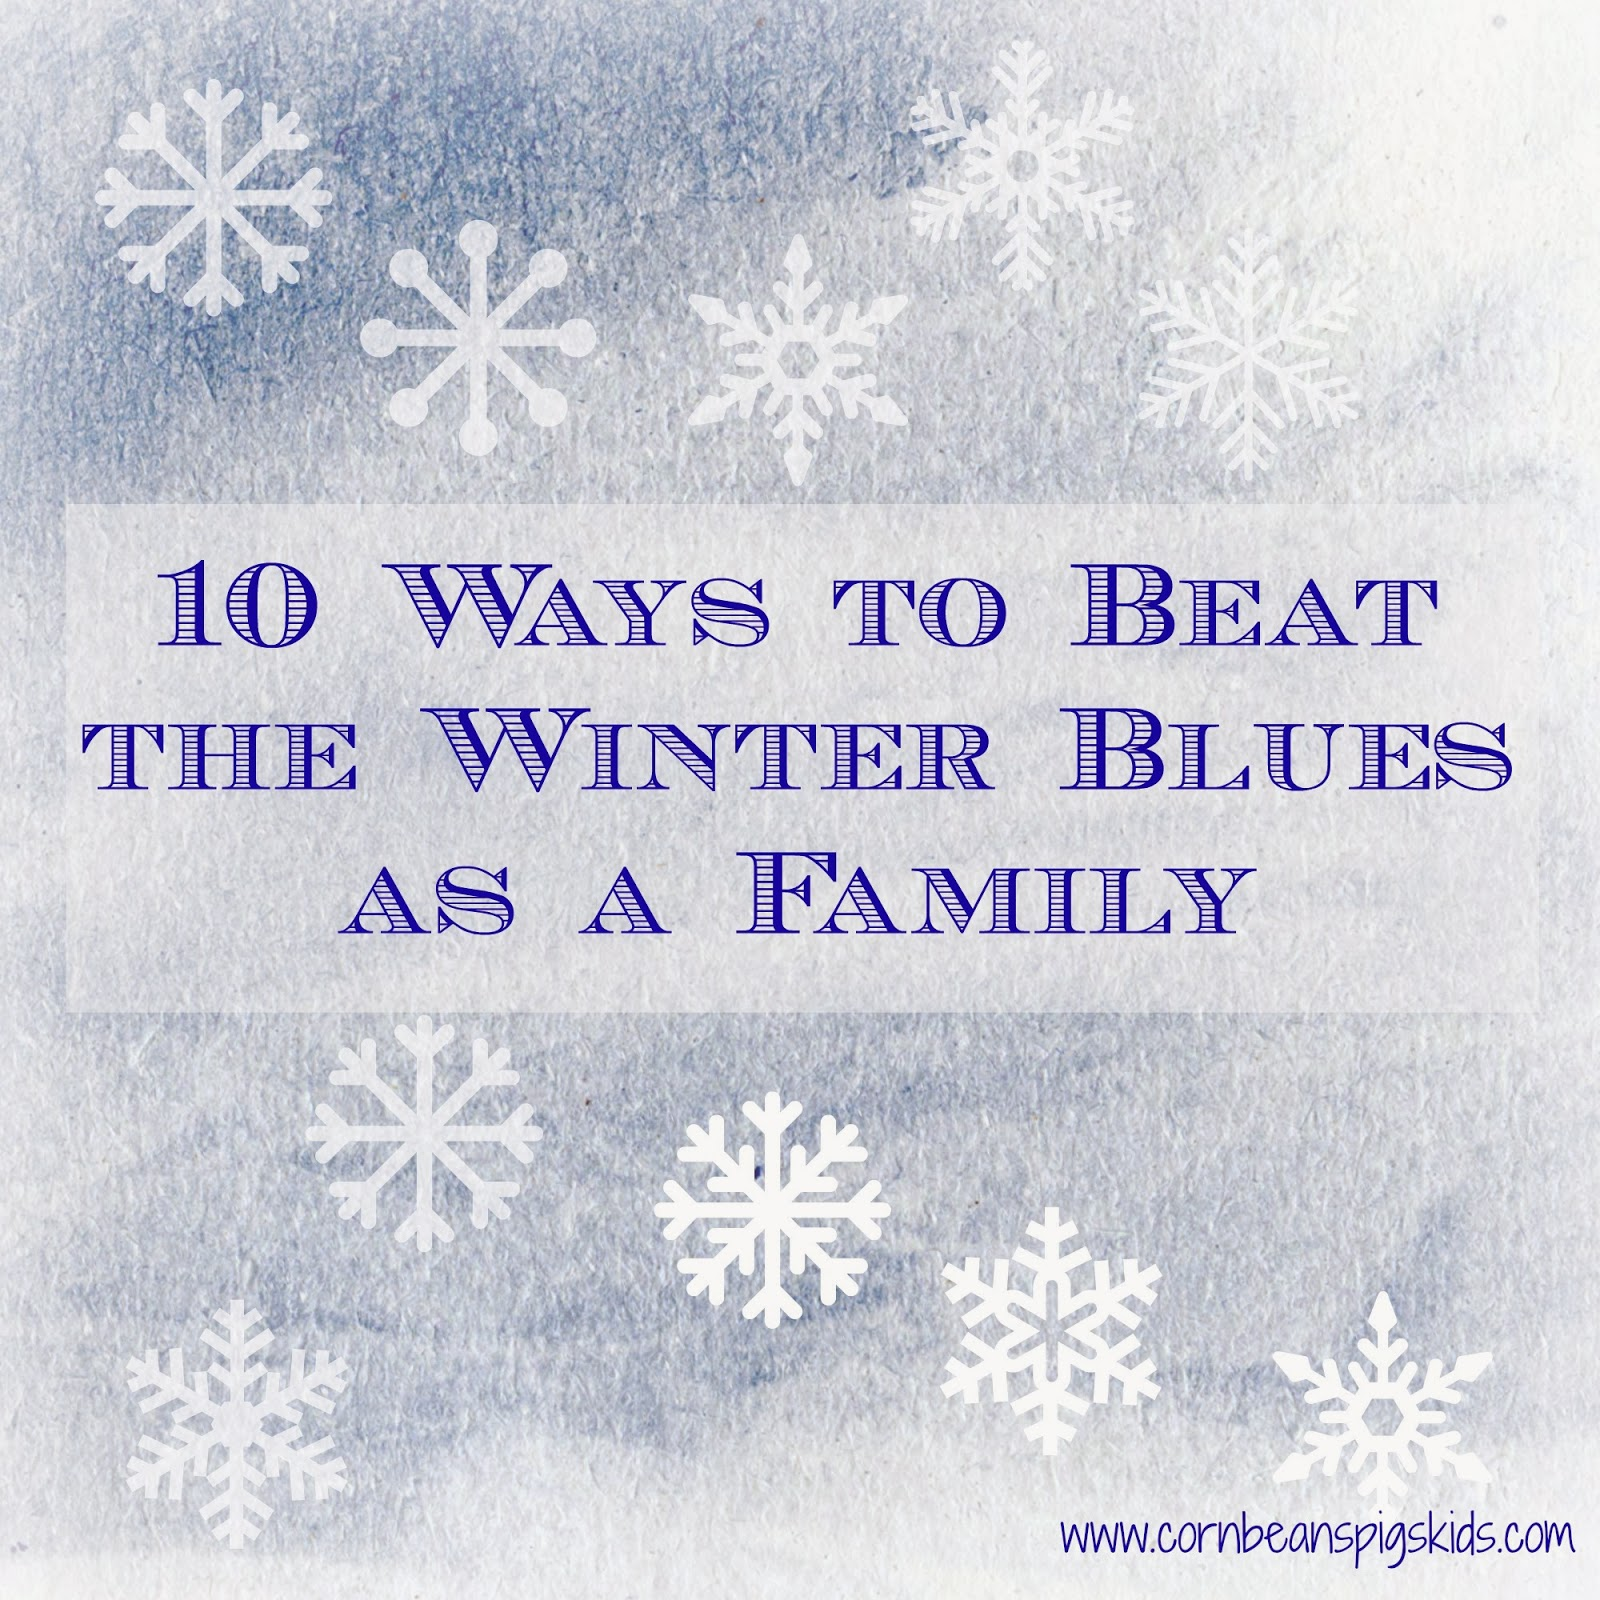 10 Ways to Beat the Winter Blues as a Family